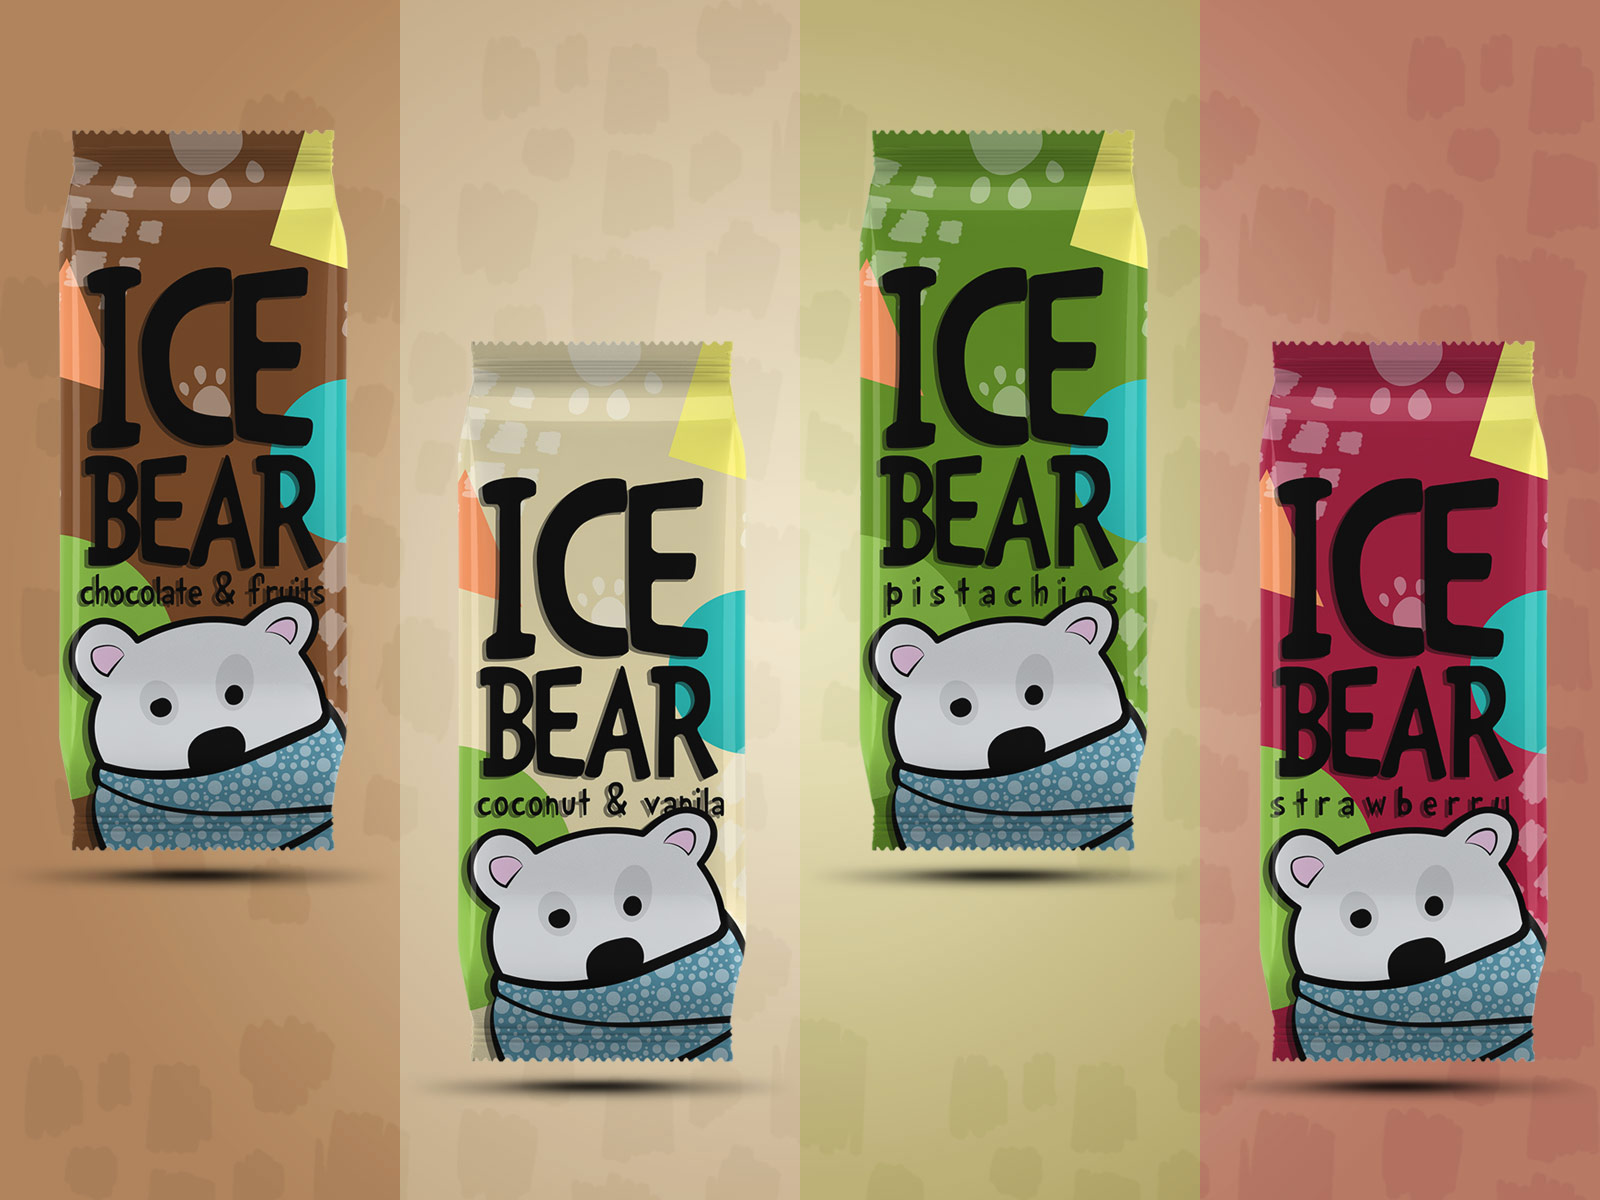 Zeljka Mitrovic - Ice Bear Ice Cream7.jpg